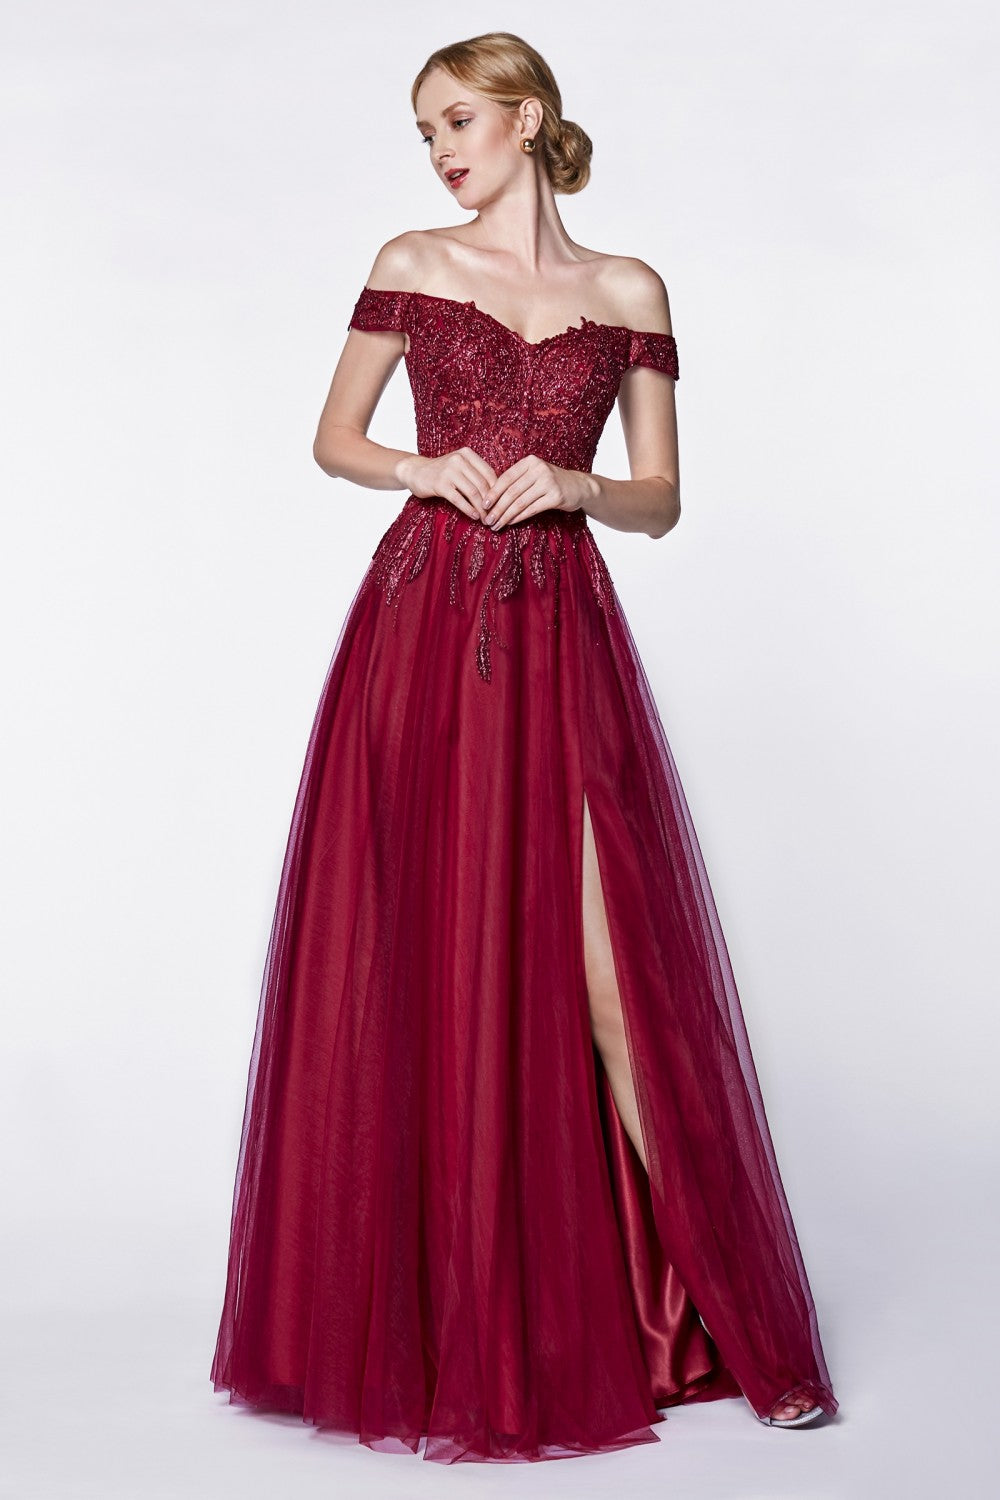 Off The Shoulder Tulle A-Line Gown With Beaded Lace Bodice And Leg Slit